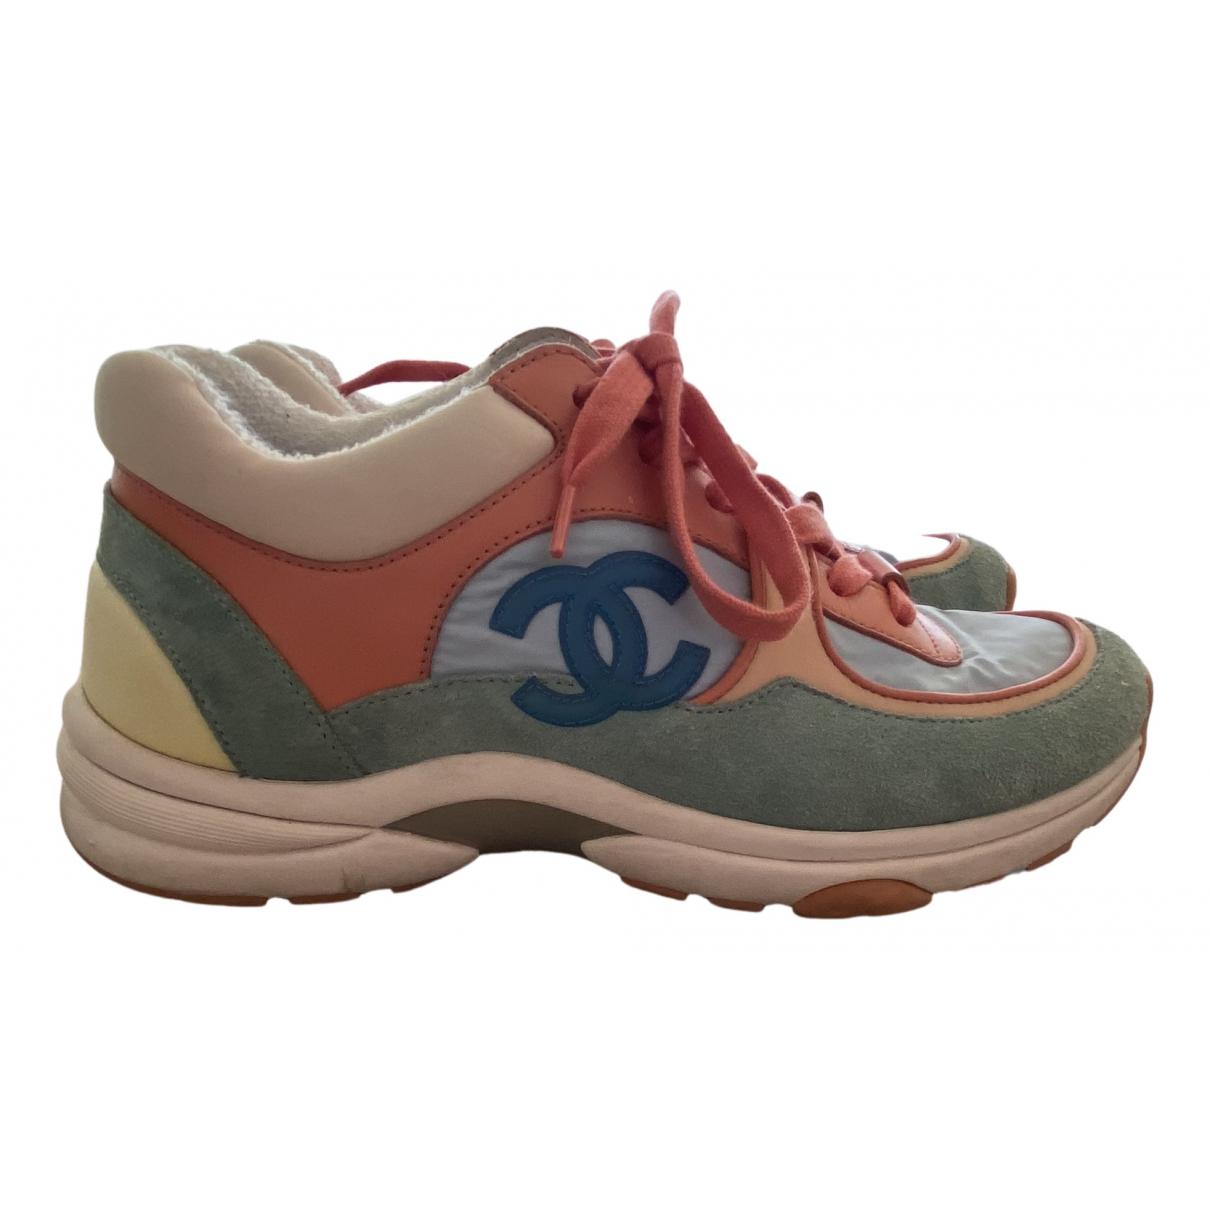 Chanel N Multicolour Suede Trainers for Women 36.5 EU